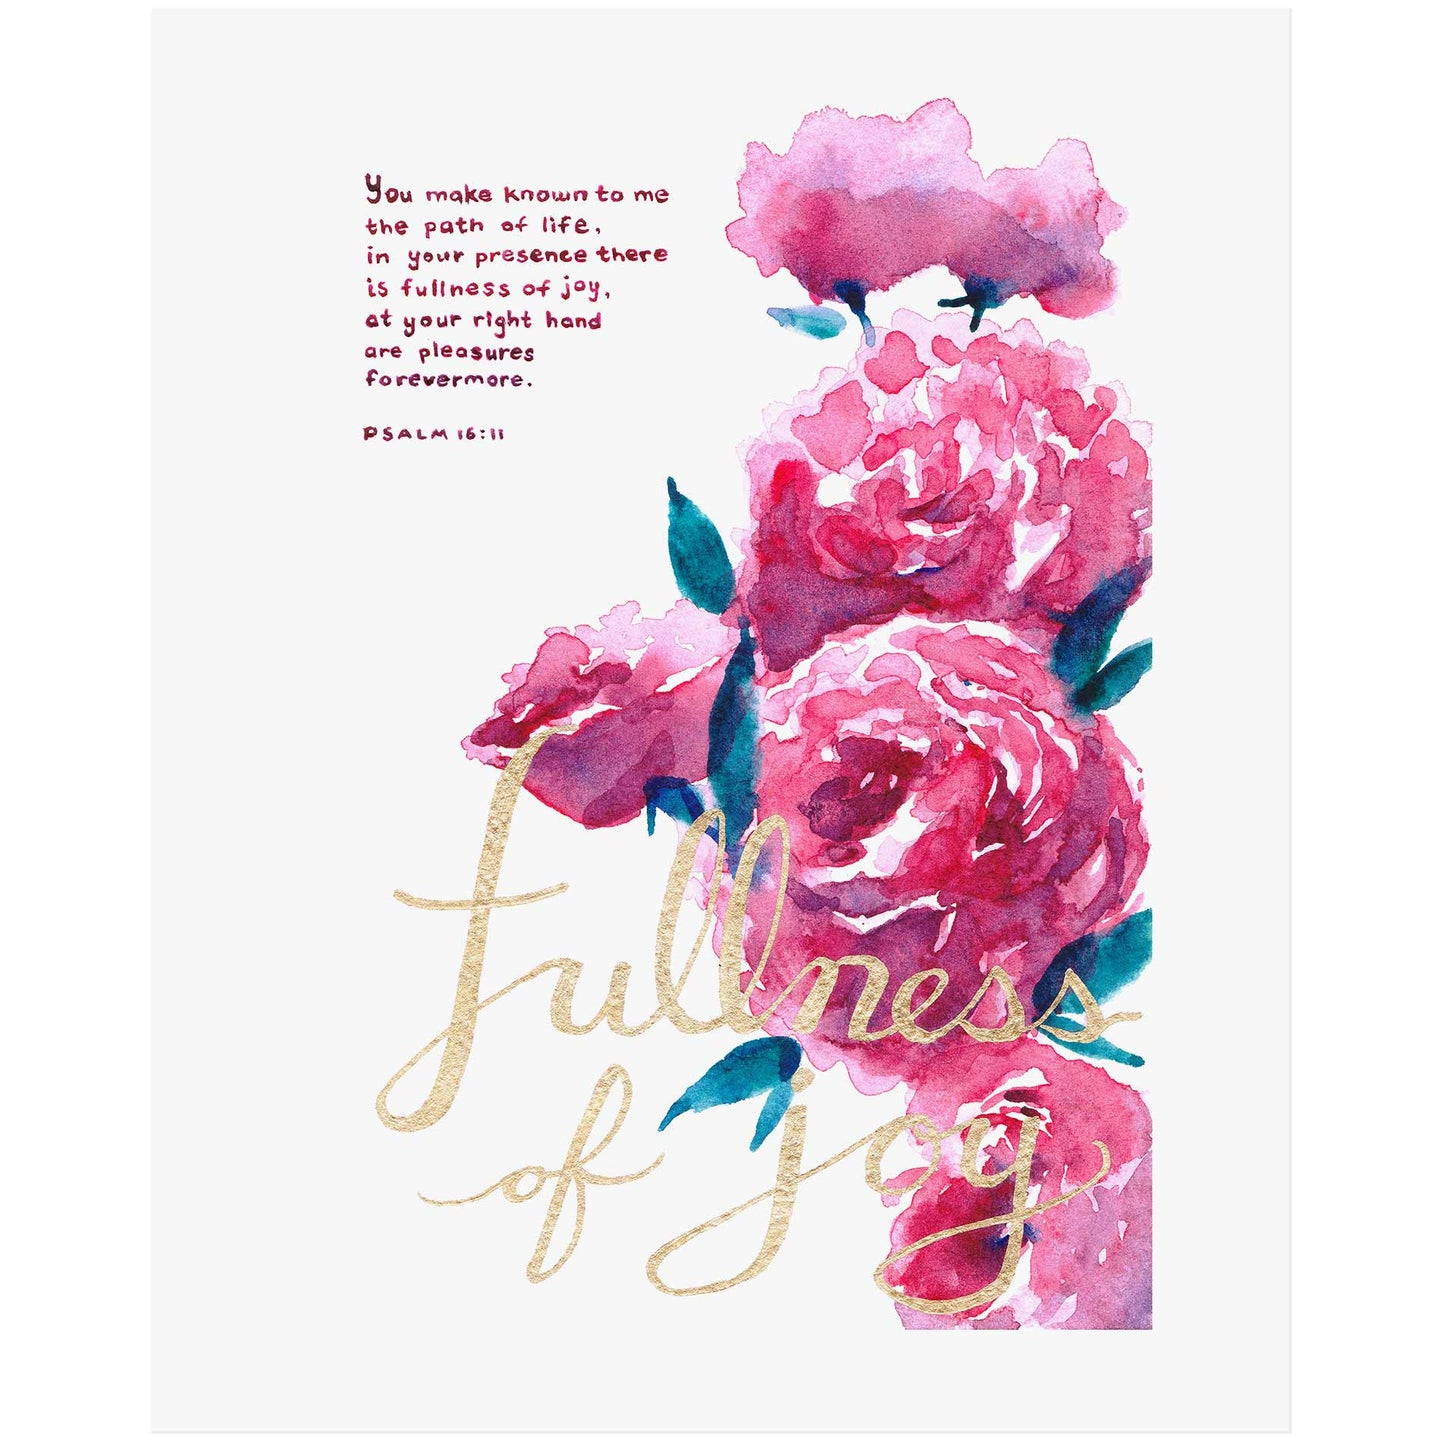 Fullness of Joy - Psalm 16:11 Scripture Art Print